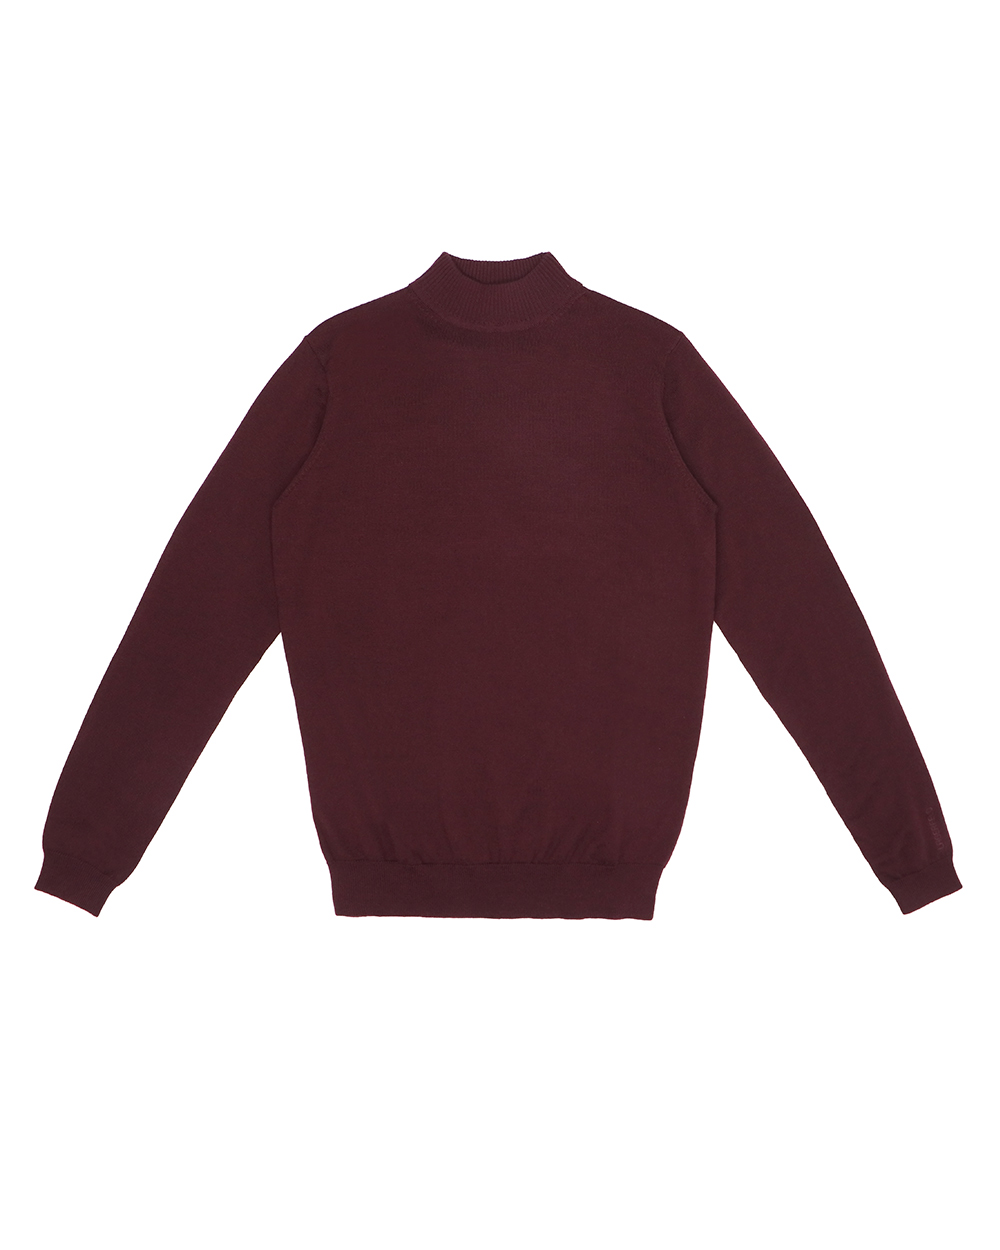 Turtleneck Sweater 63302560